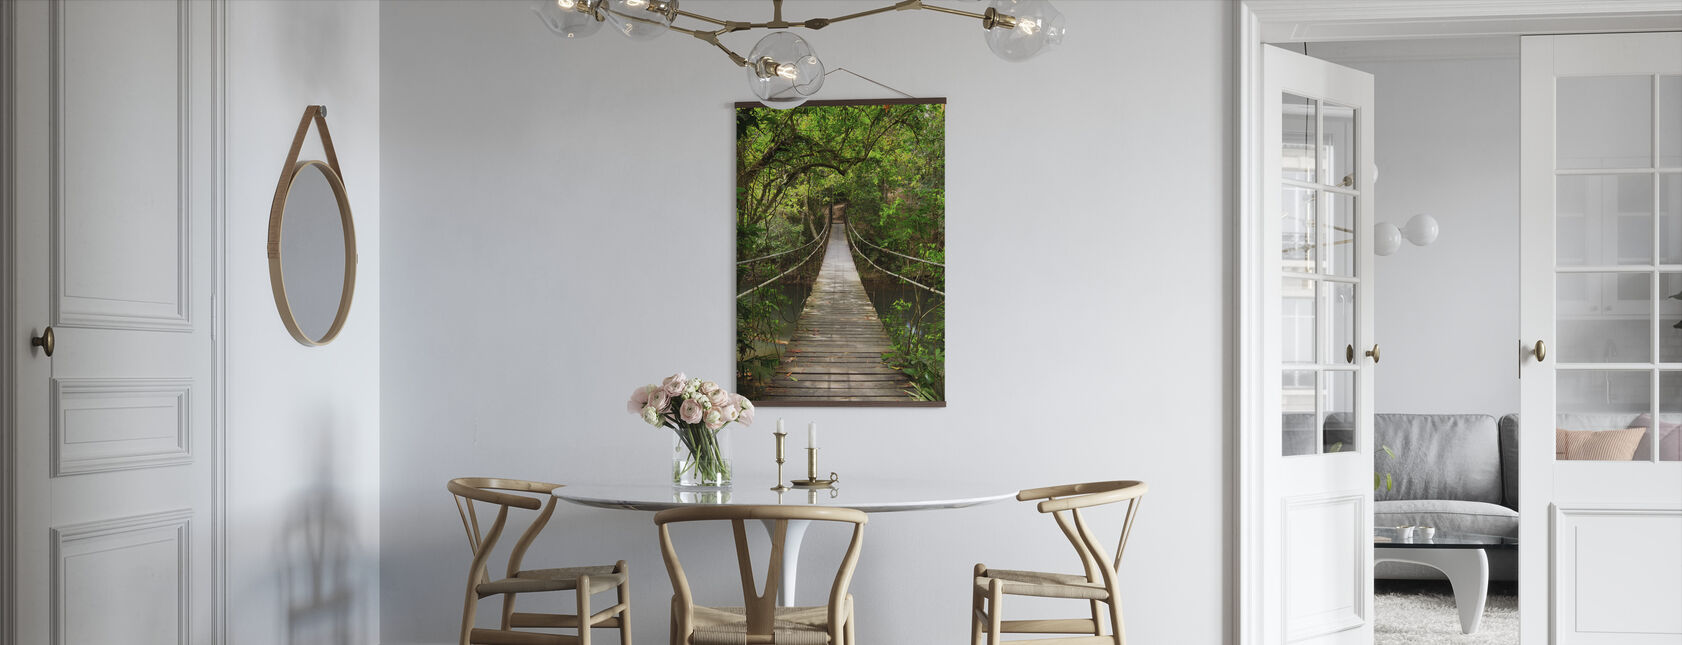 Rainforest Vine Bridge - Poster - Kitchen